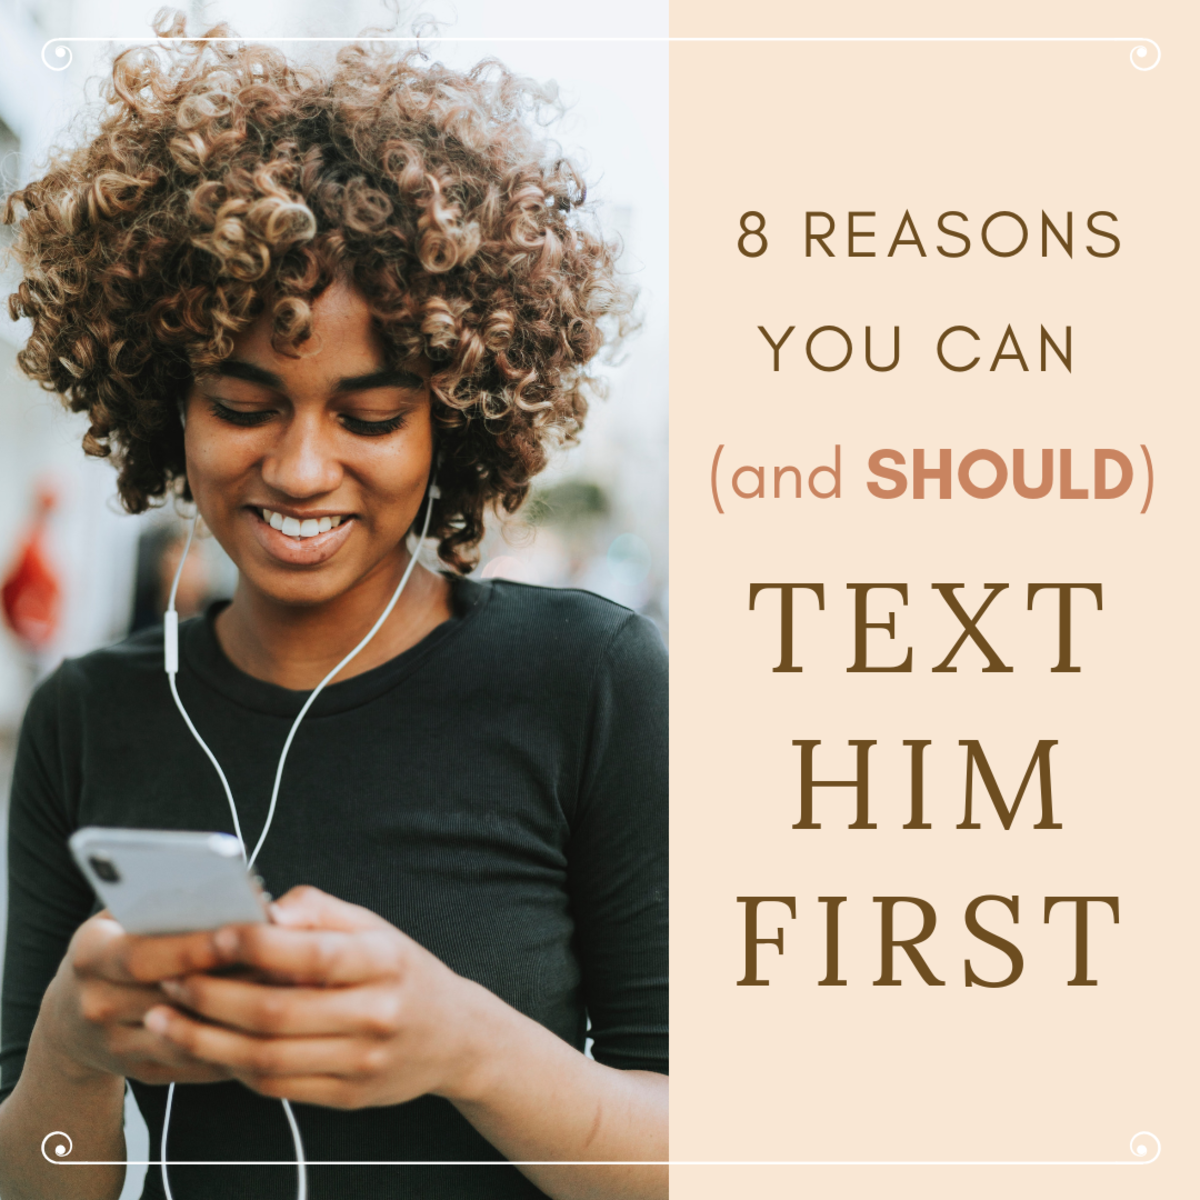 Contrary to popular belief, there's nothing wrong with texting a guy first. In fact, it can have quite a few benefits!